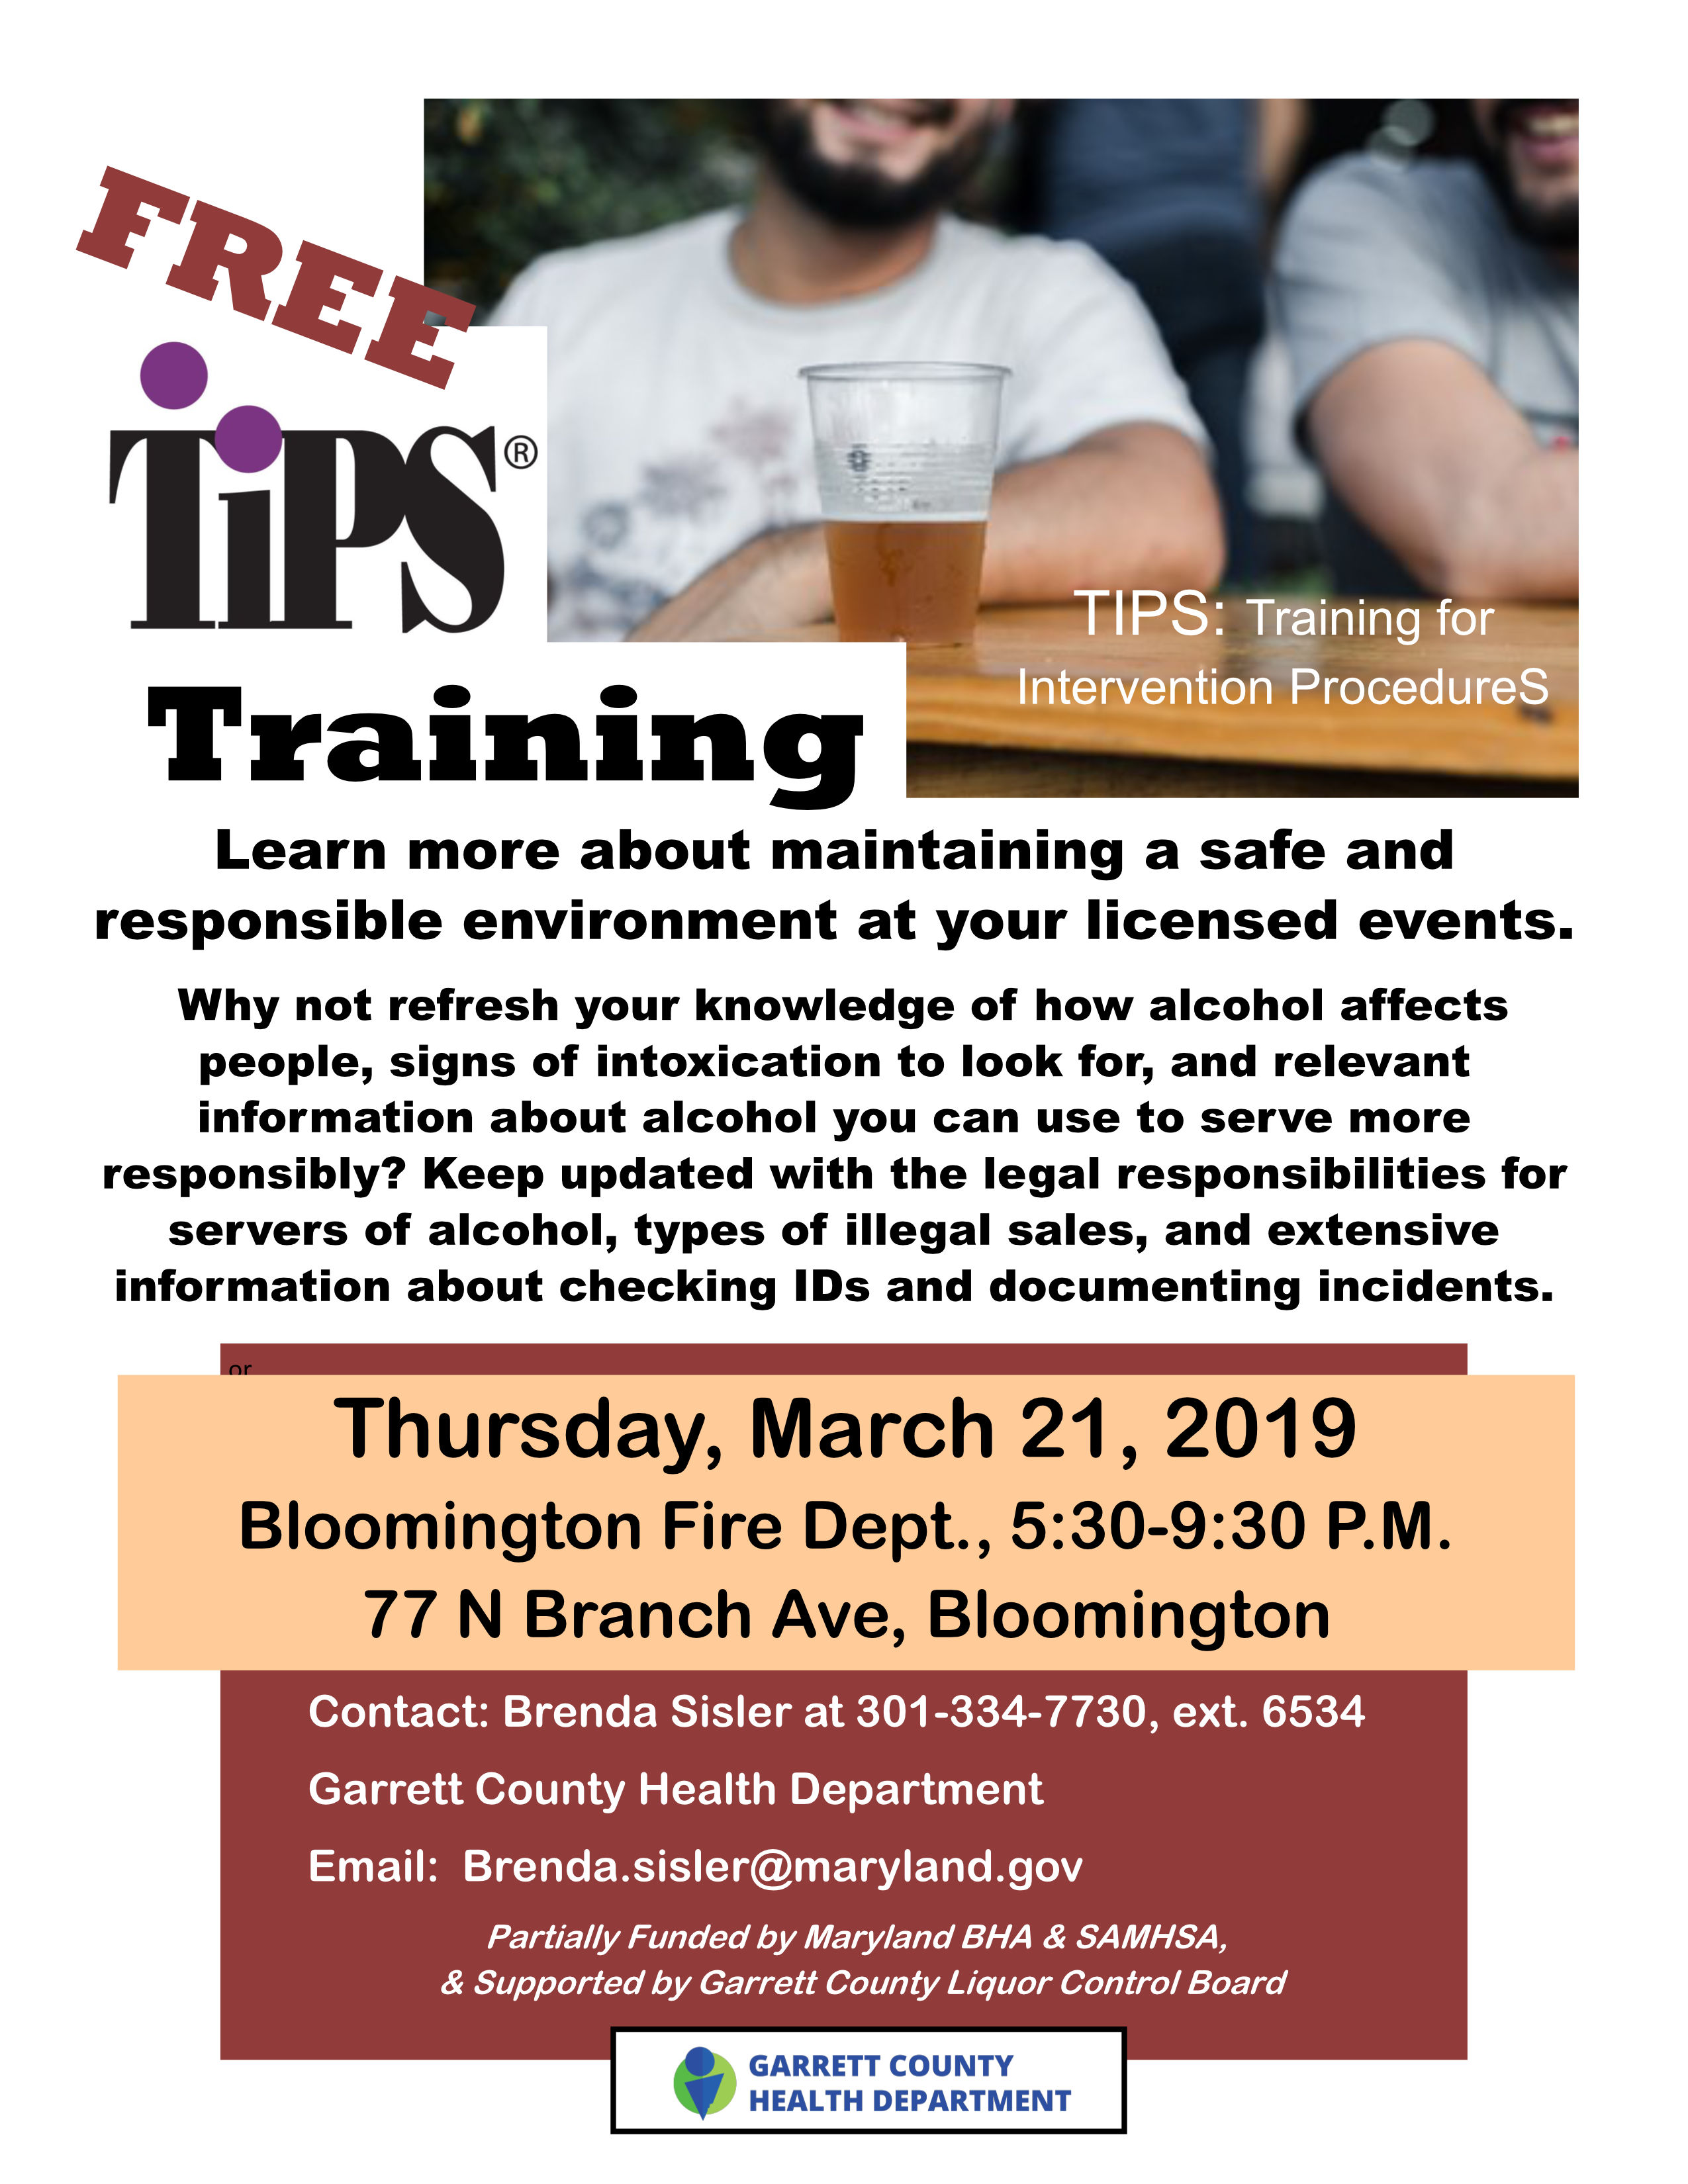 Two More FREE TIPS Trainings Offered by the Garrett County